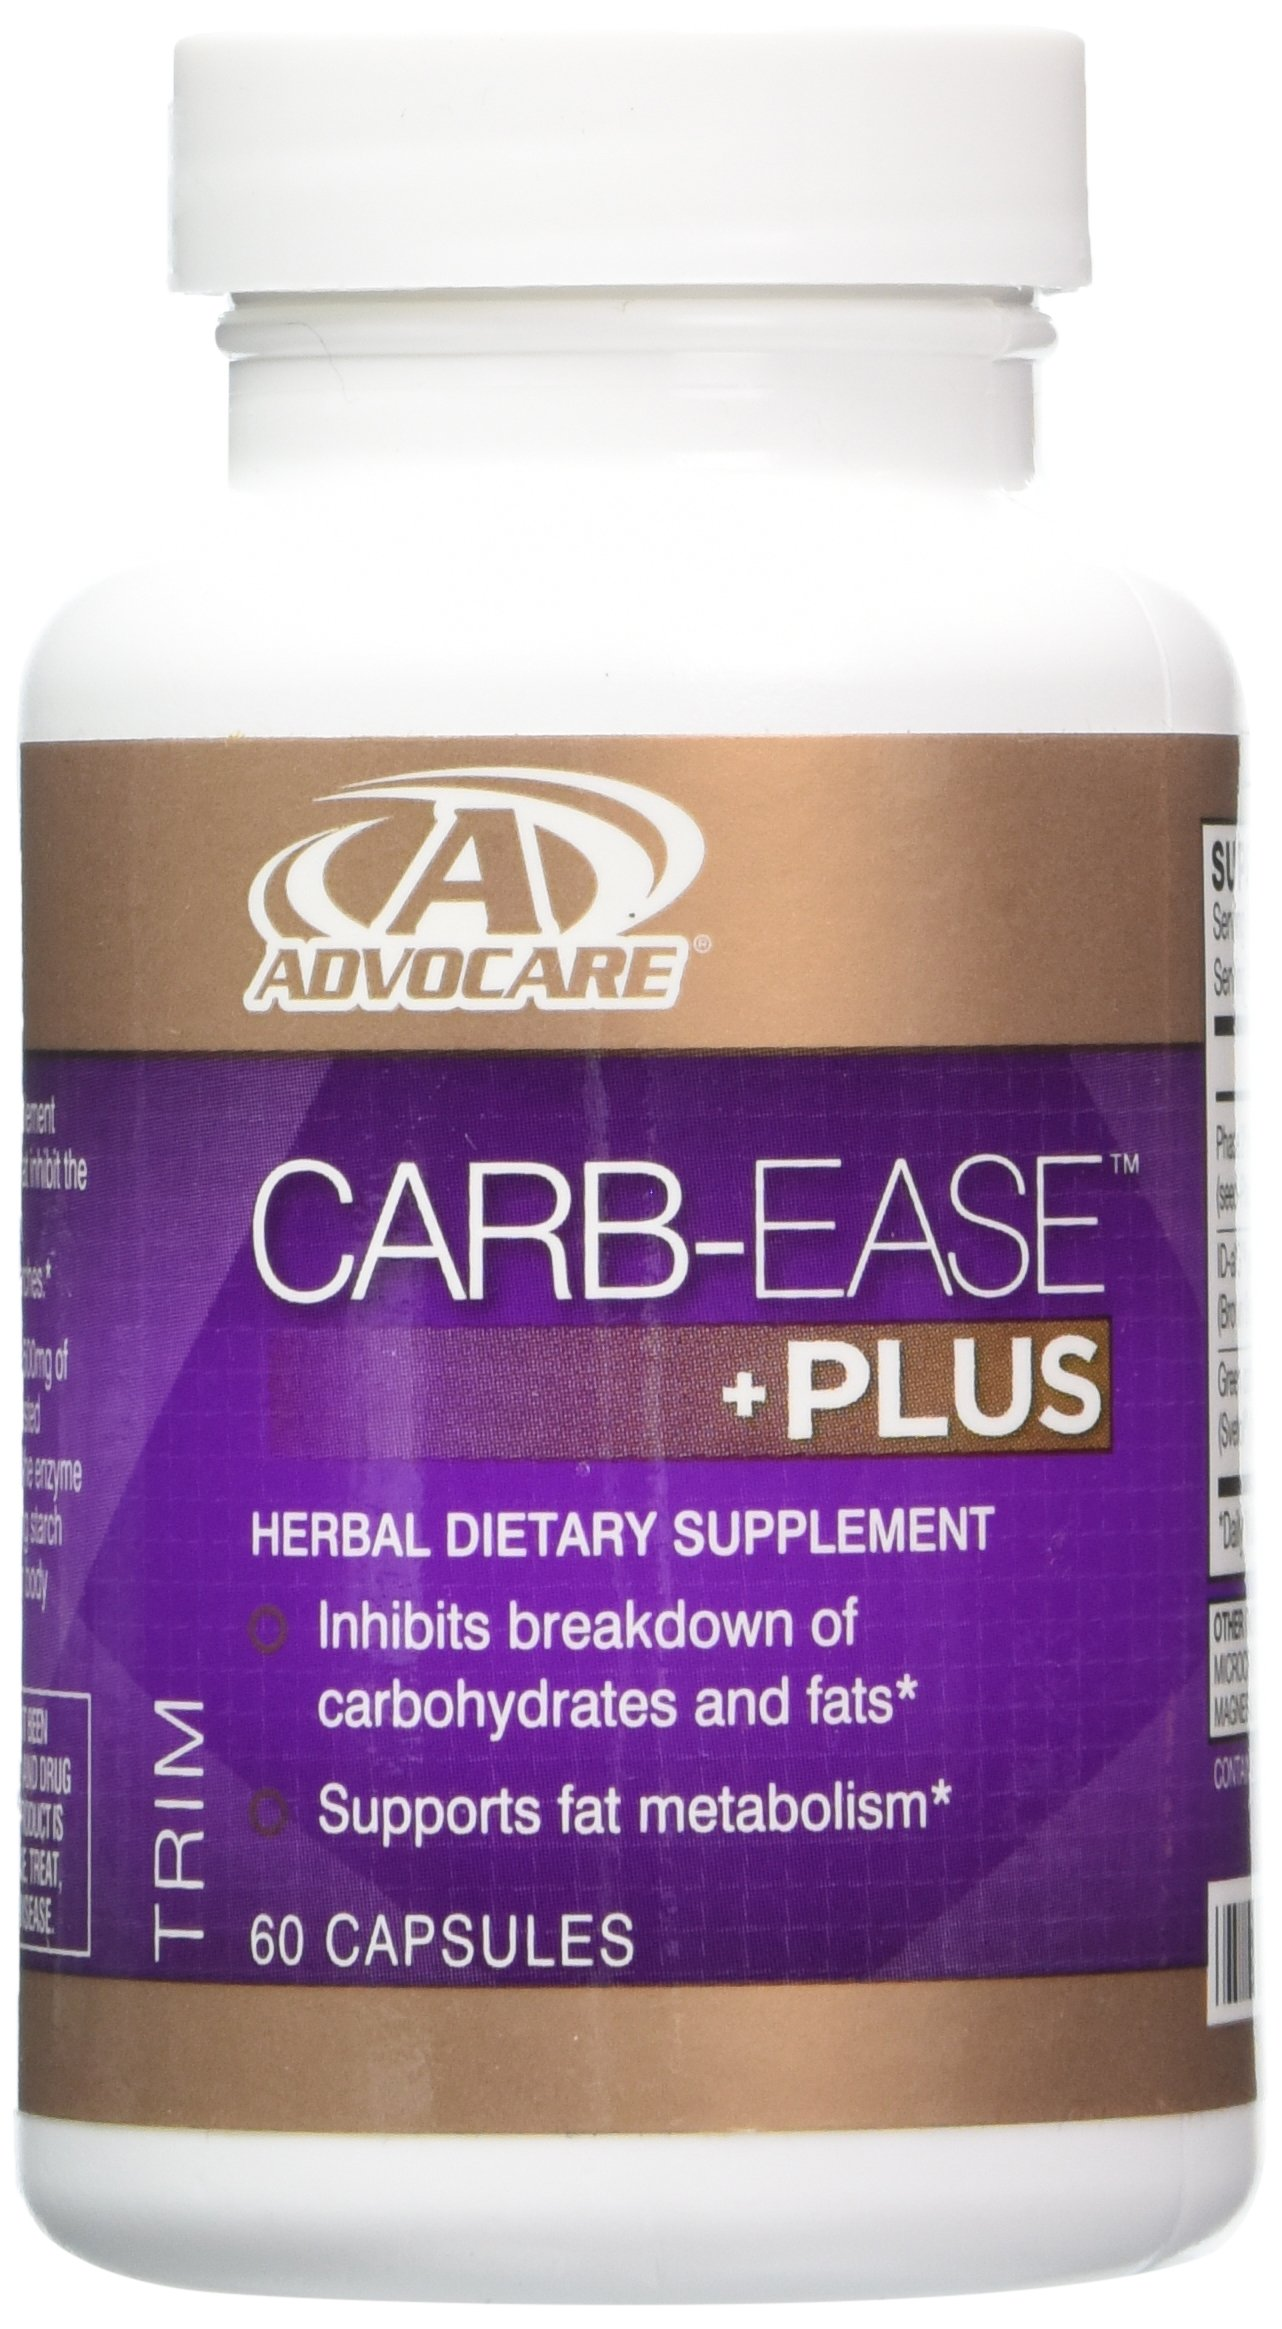 Advocare Carb-Ease Plus - 60 Capsules by AdvoCare